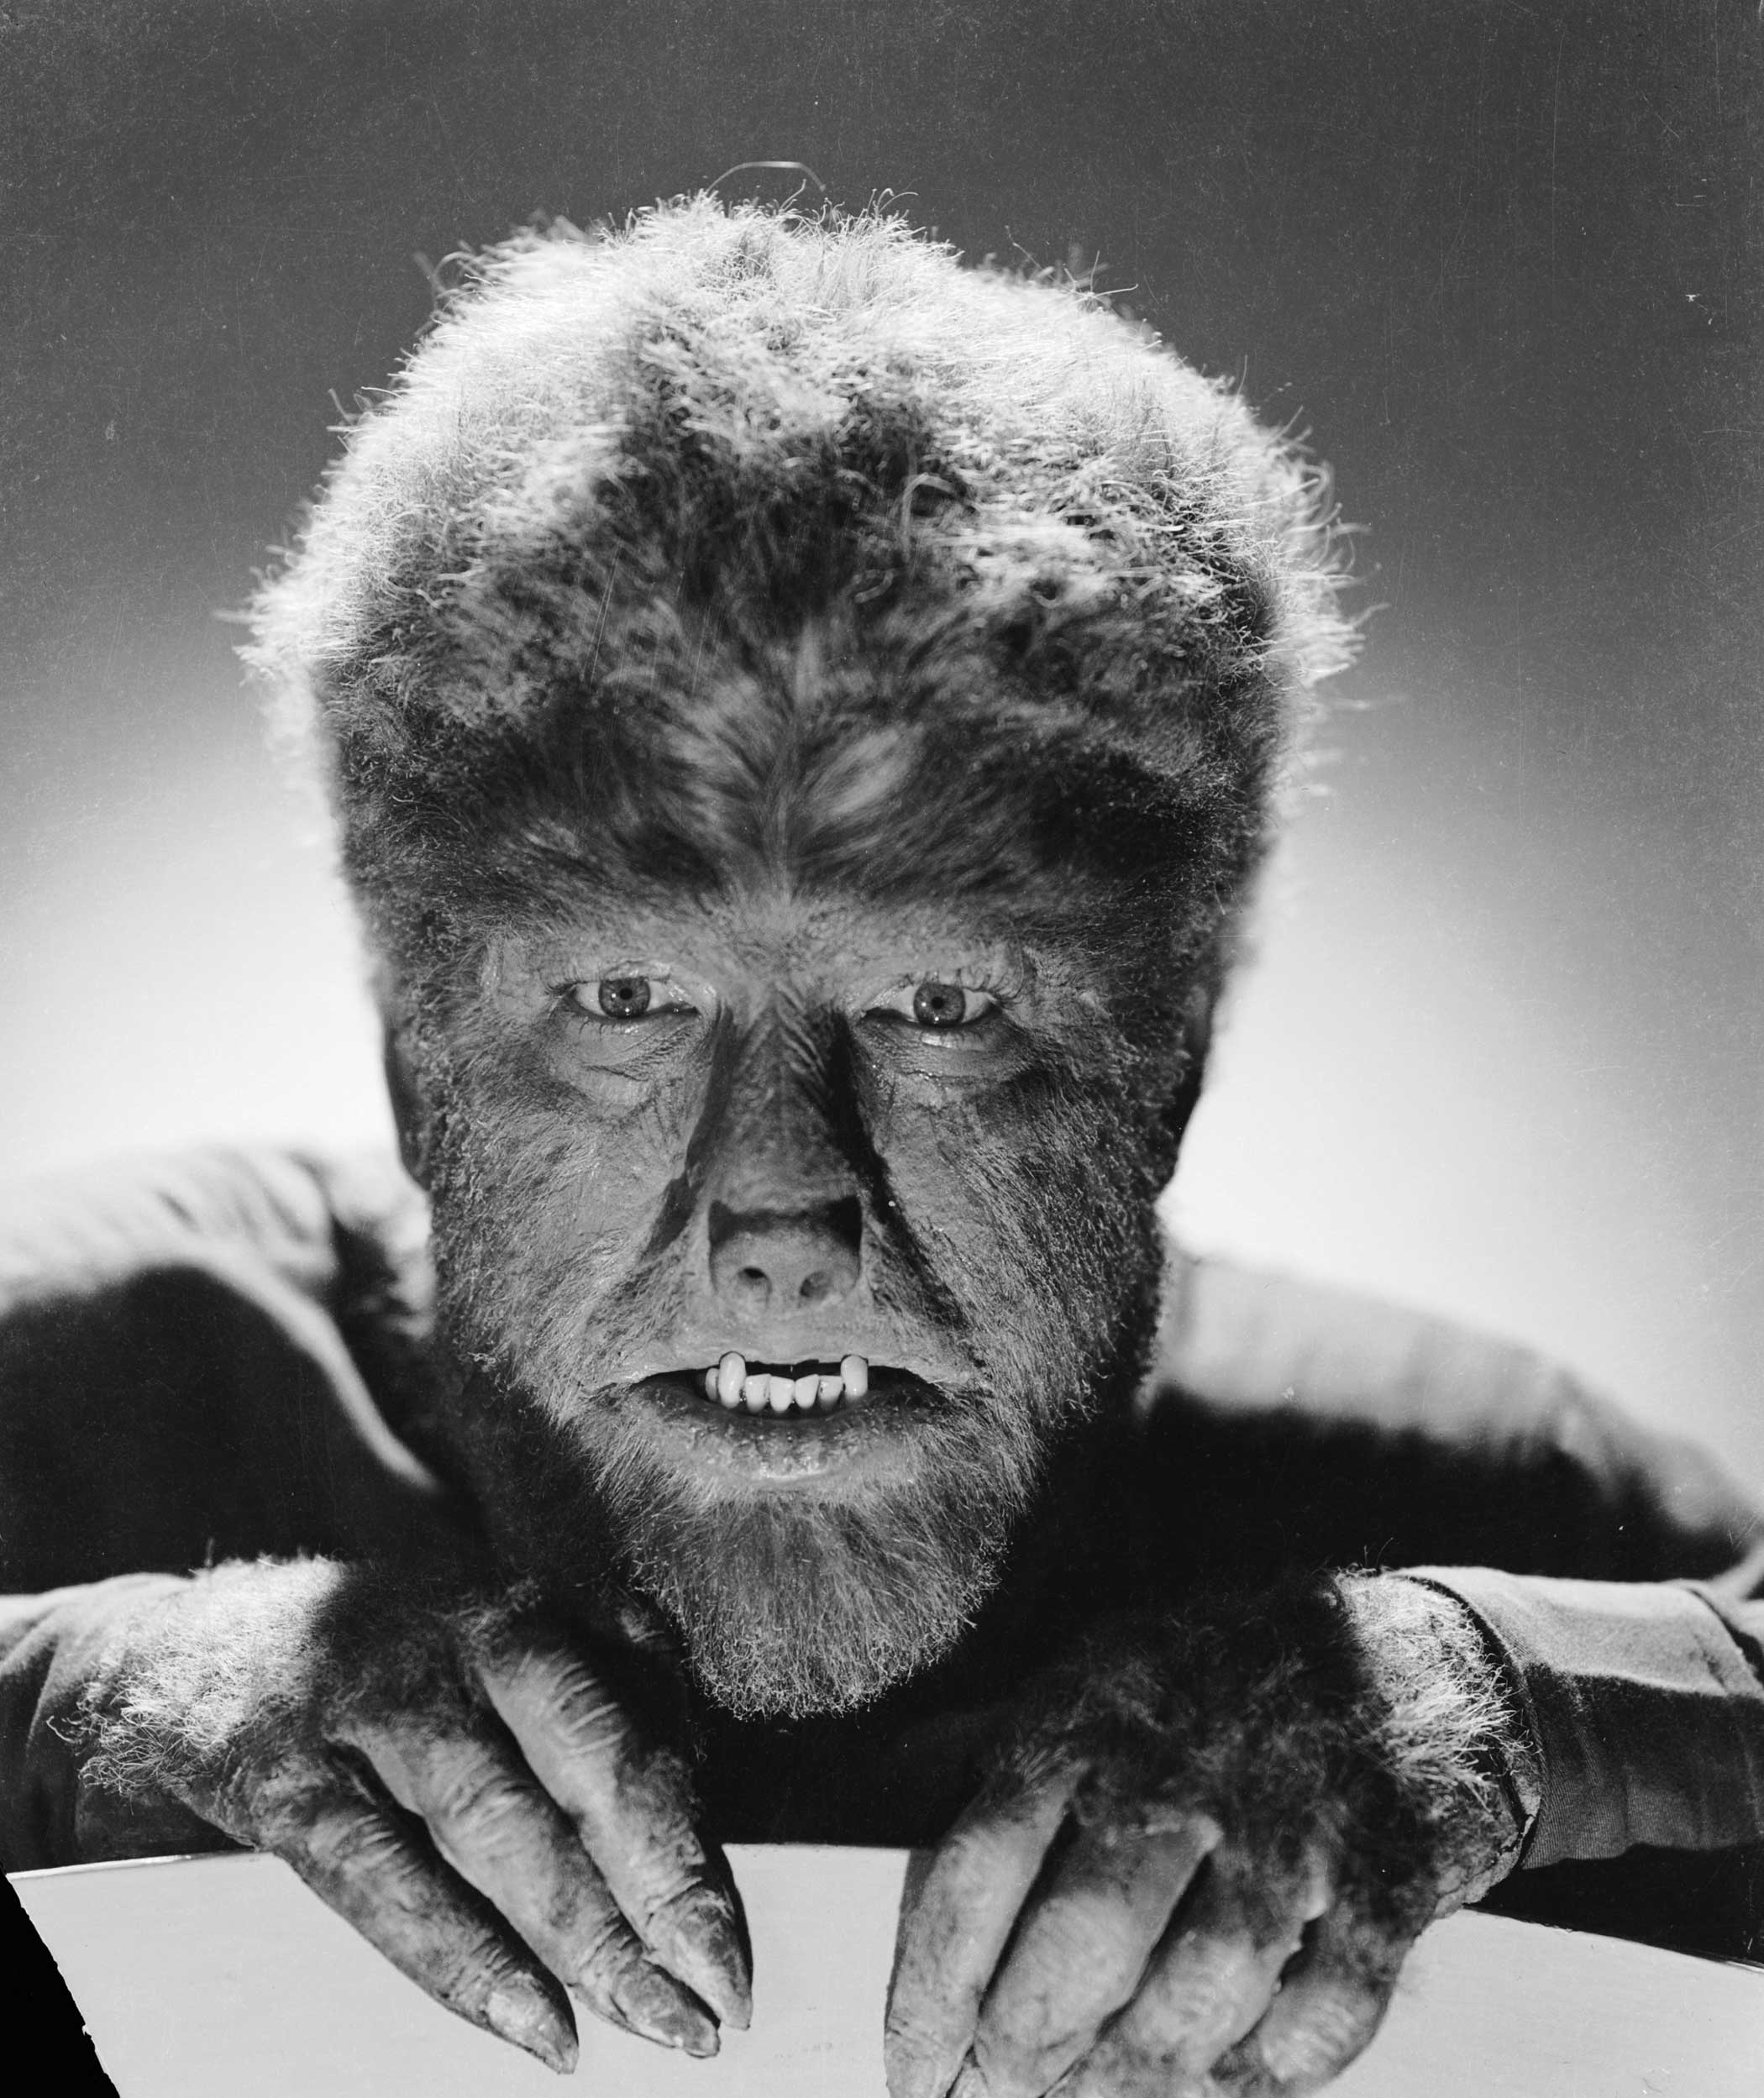 The Wolf Man from The Wolf Man, 1941.